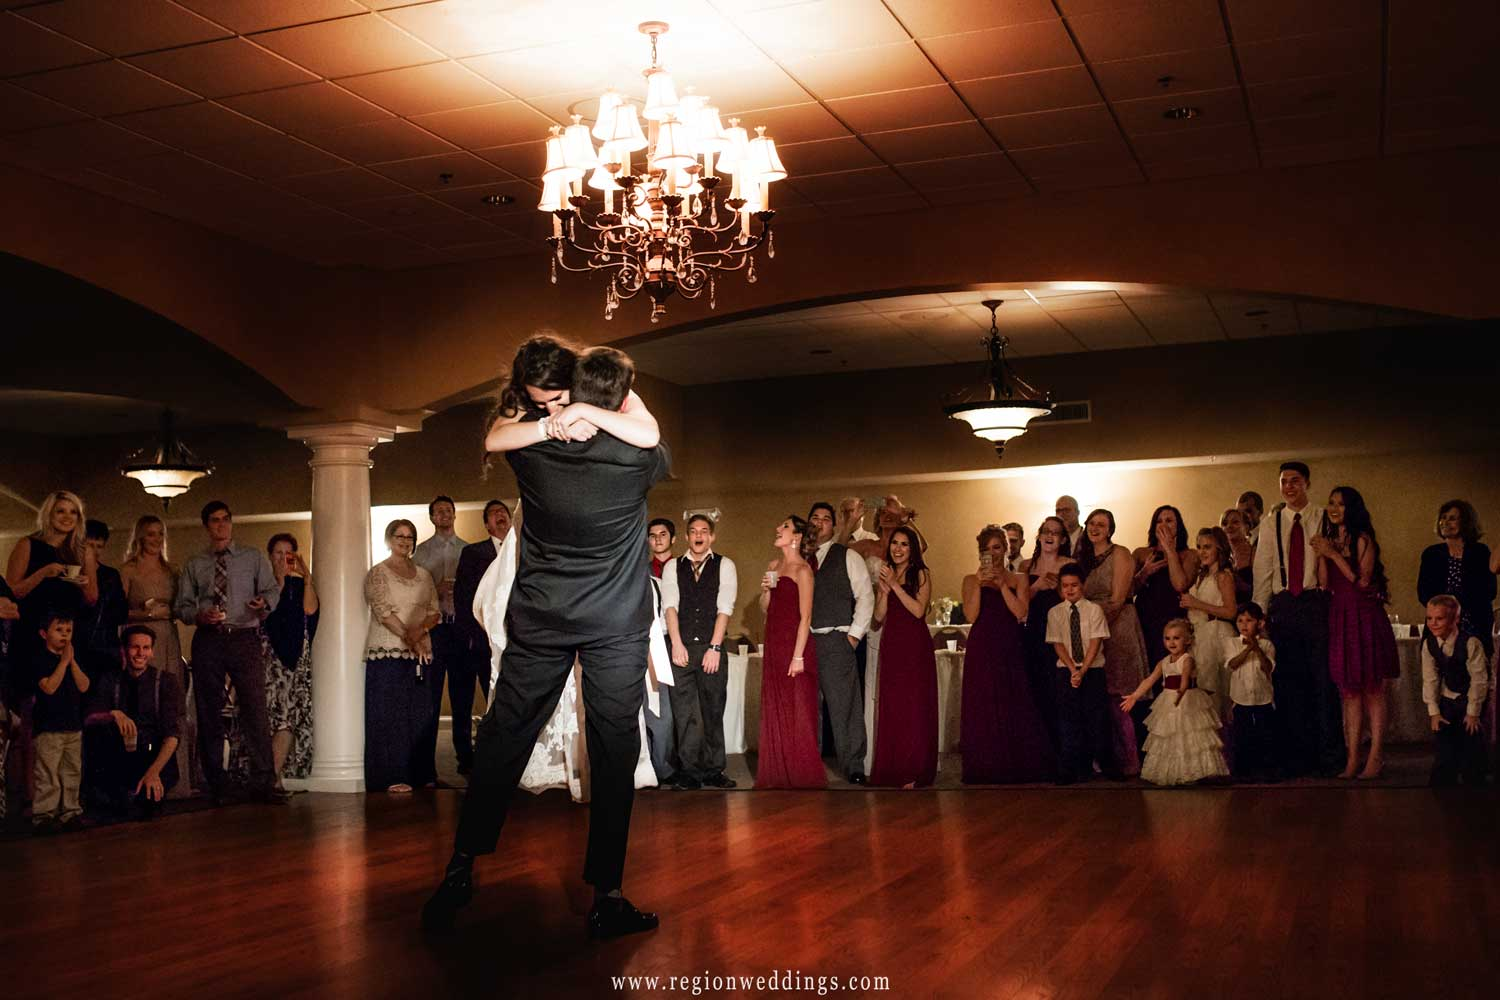 The groom lifts the bride into the air at Trinity Hall in Chesterton, Indiana.